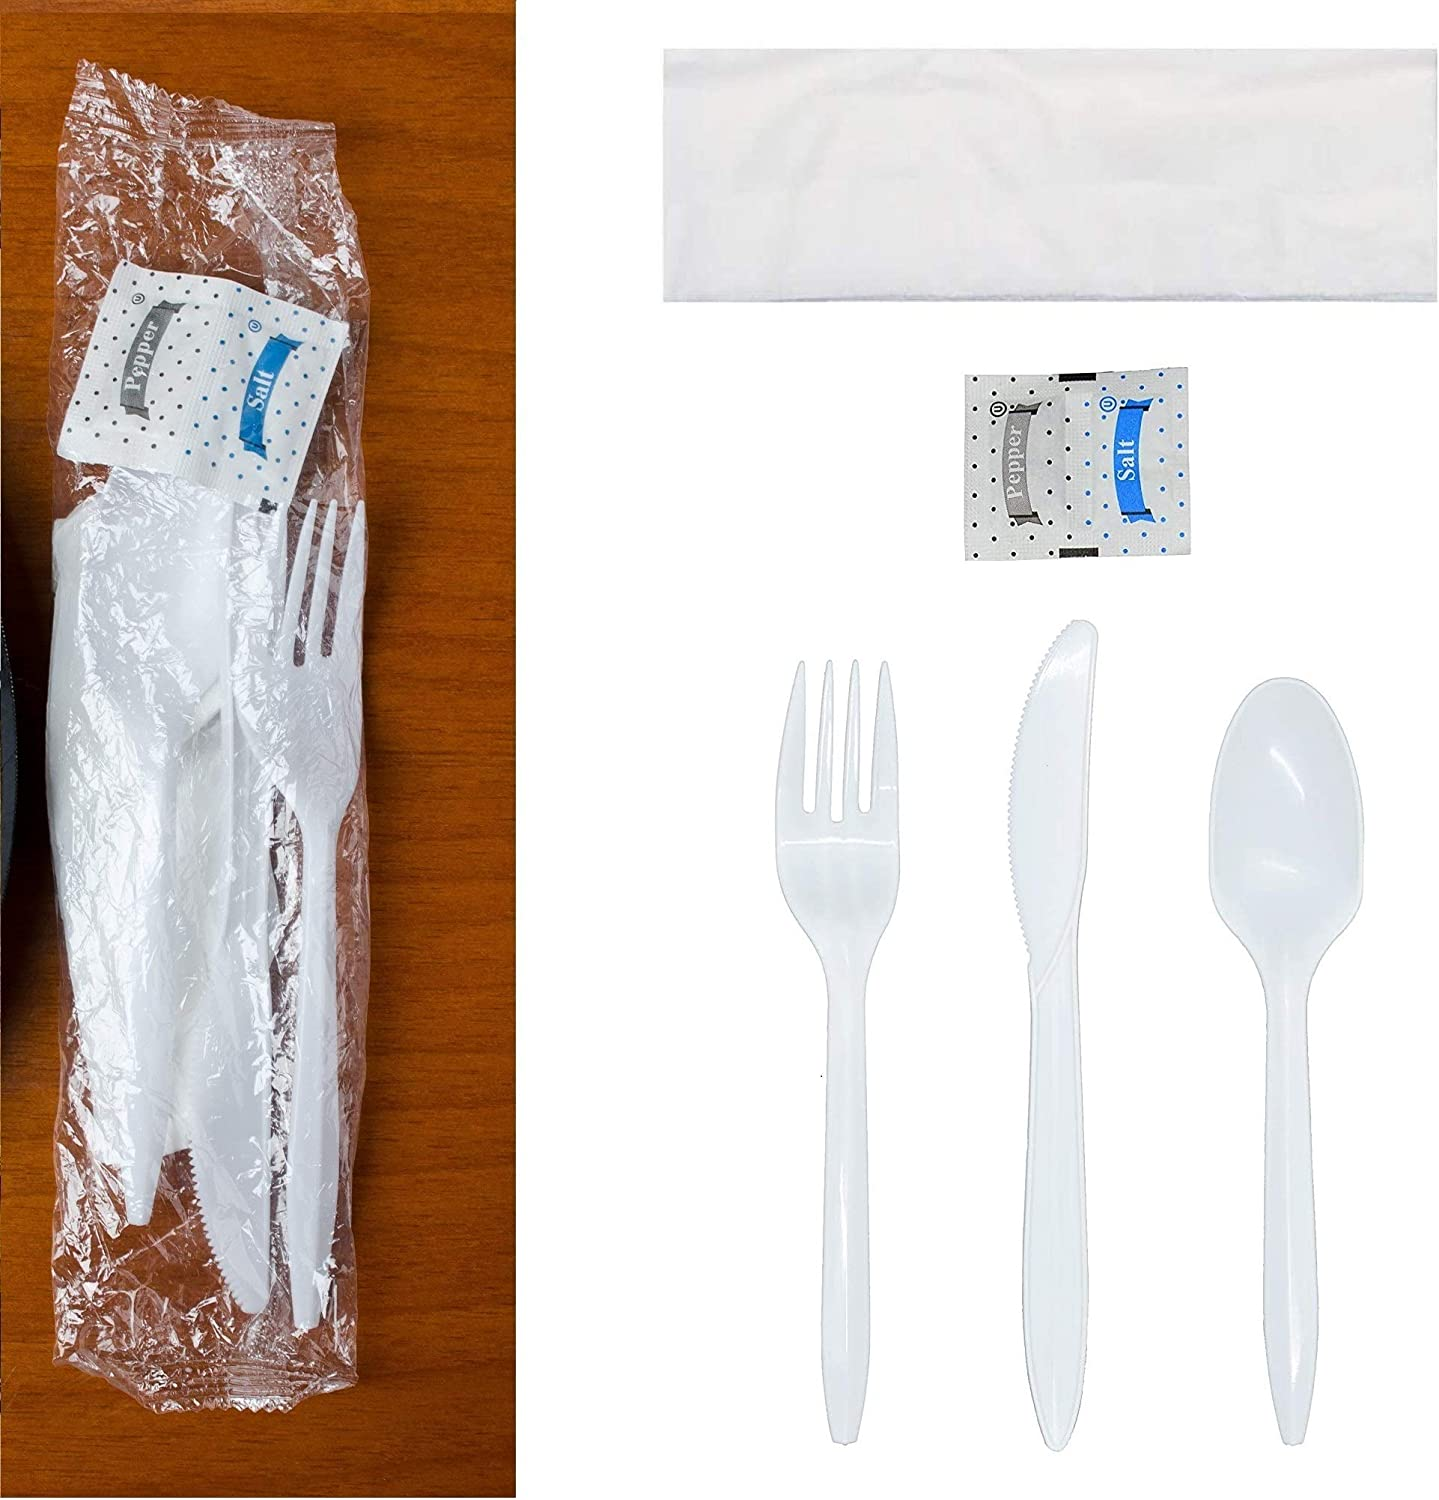 250 Plastic Cutlery sold out Packets - Knife Spoon Quality inspection Peppe Napkin Fork Salt